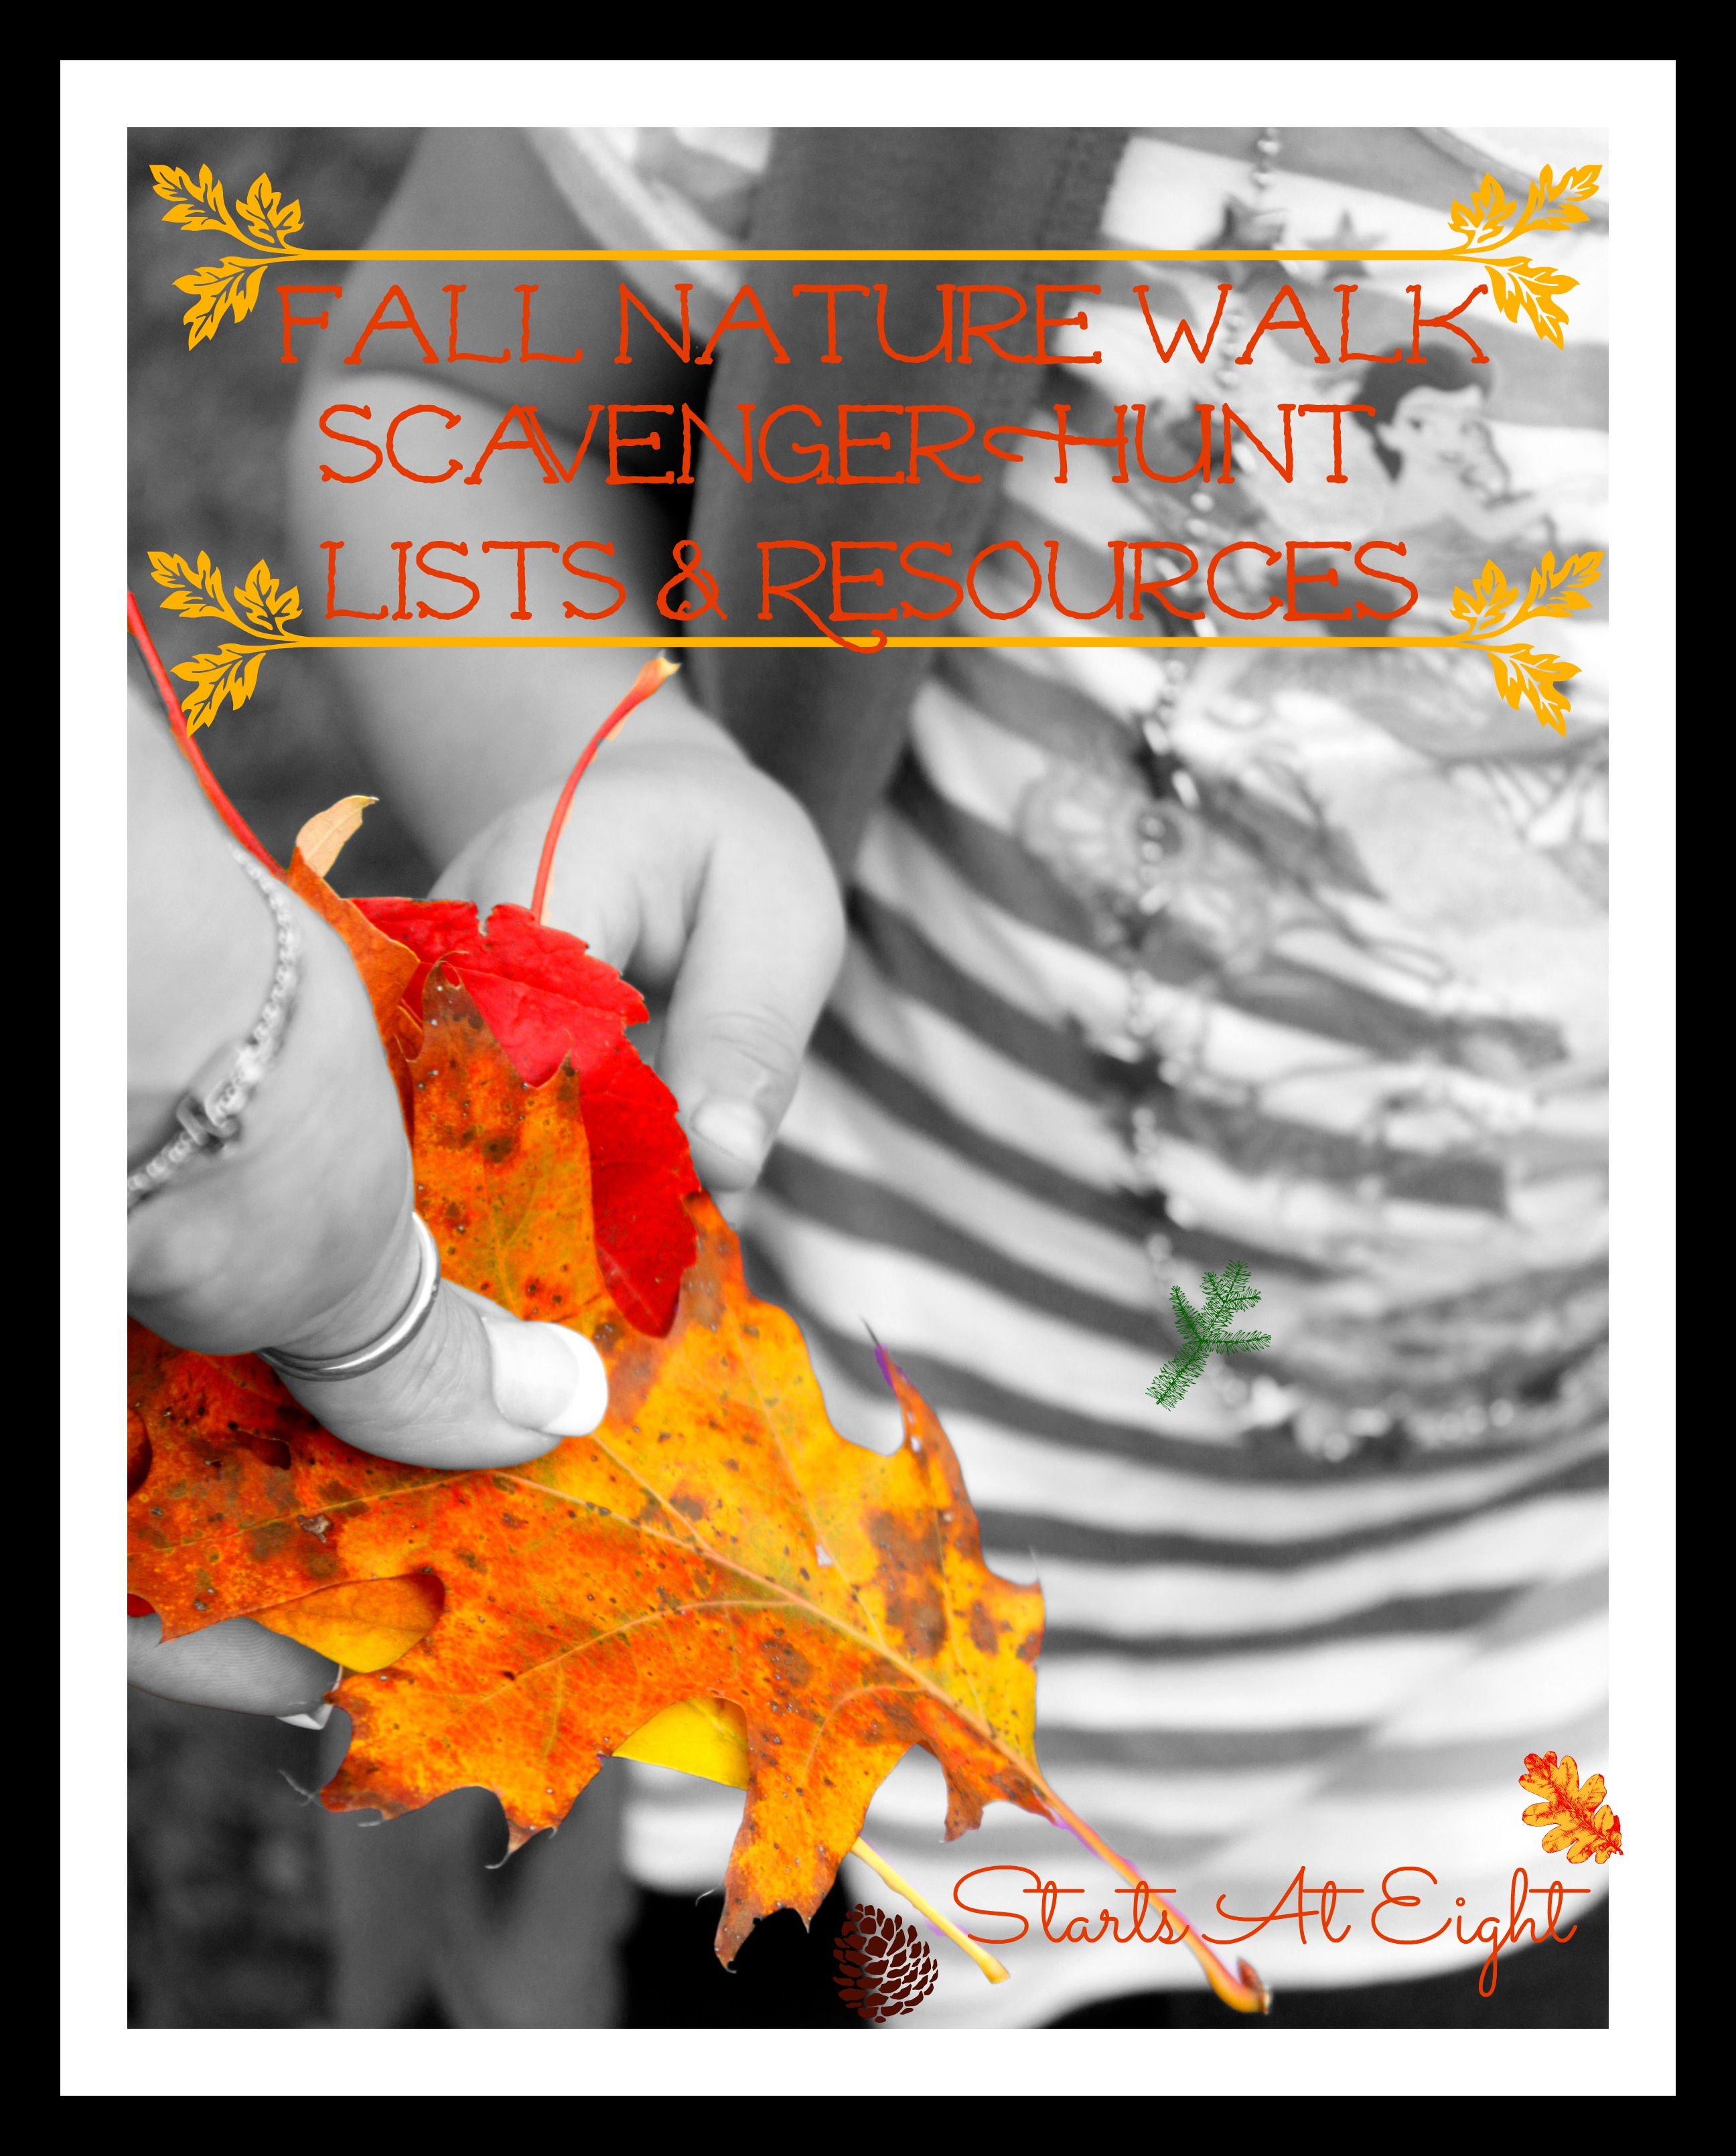 Fall Nature Walk – Scavenger Hunt Lists & Resources